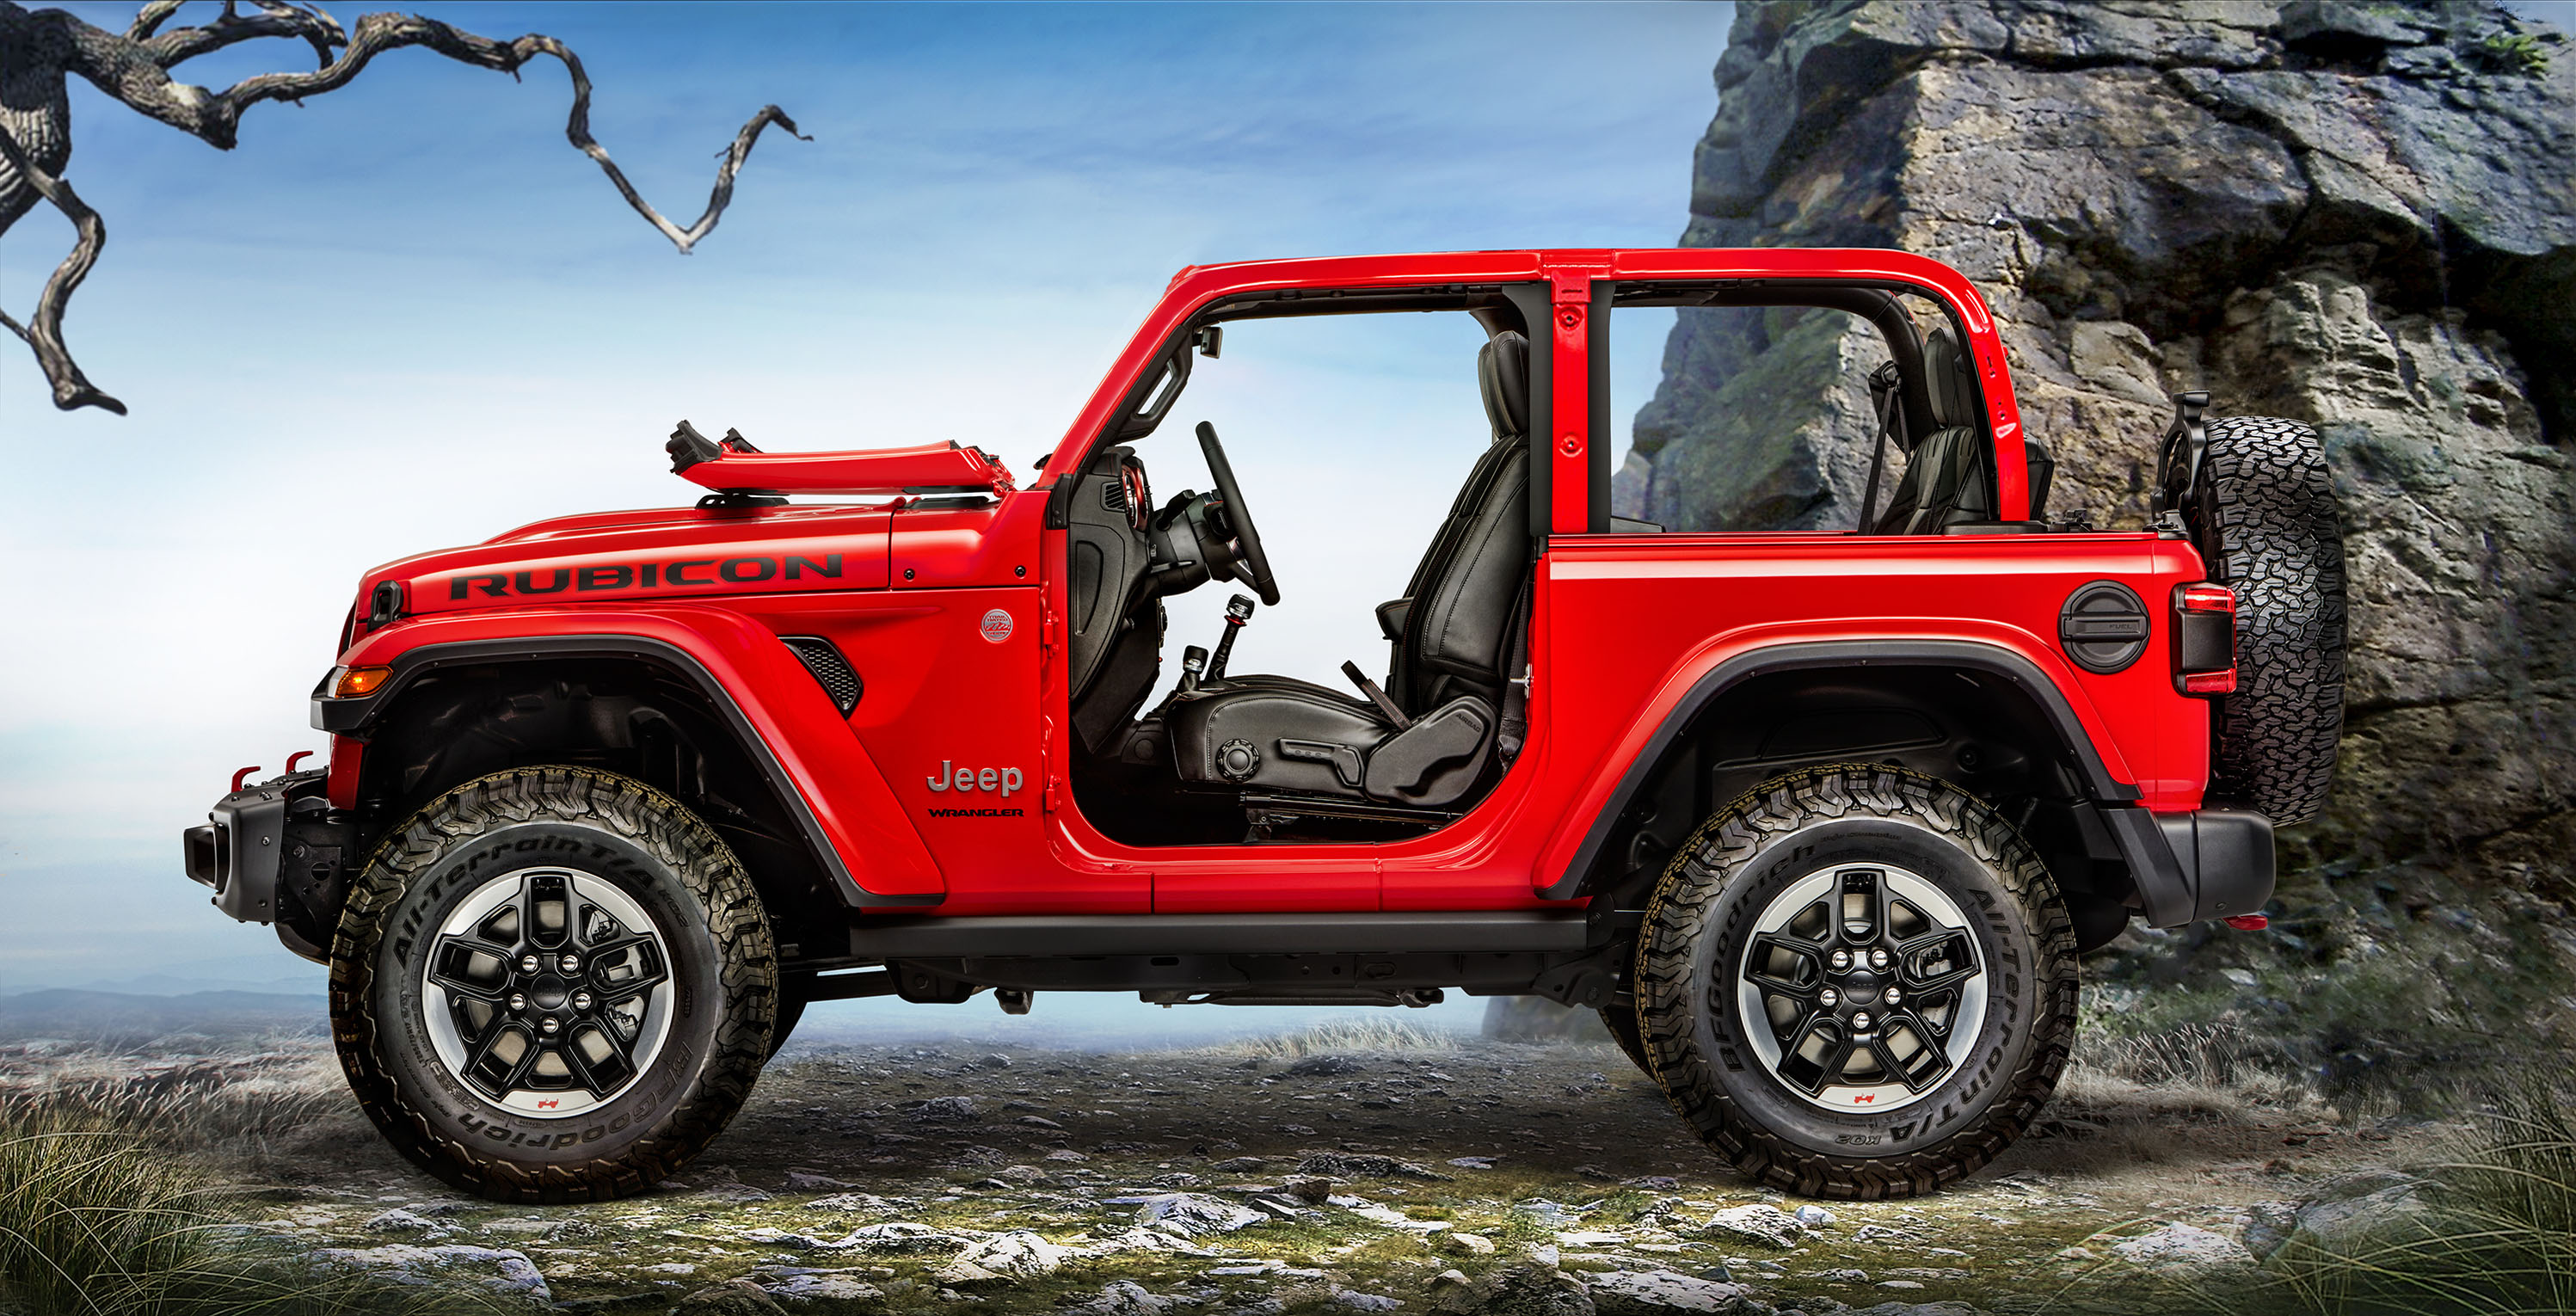 Jeep Wrangler Msrp >> 2018 Jeep Wrangler Price Climbs To 28 190